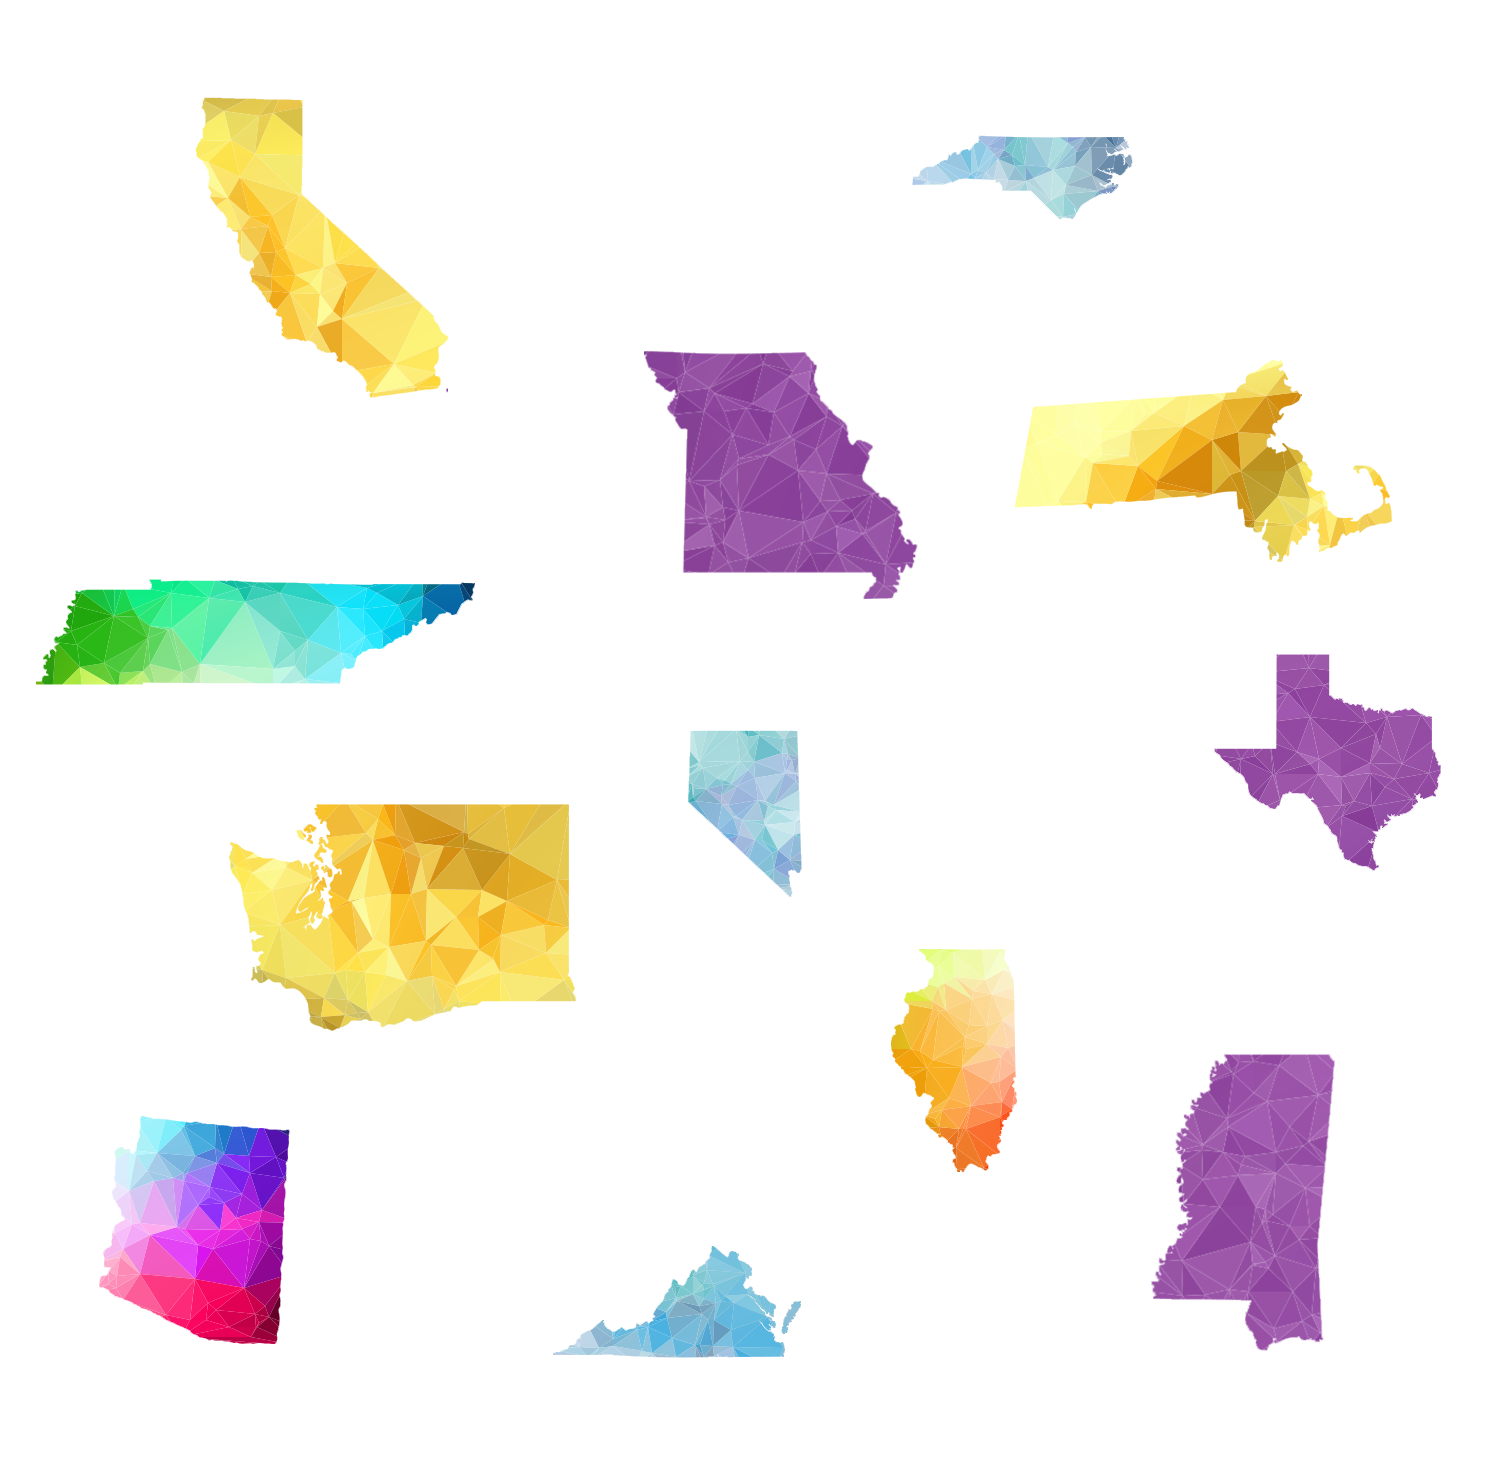 Polygonal art of various states